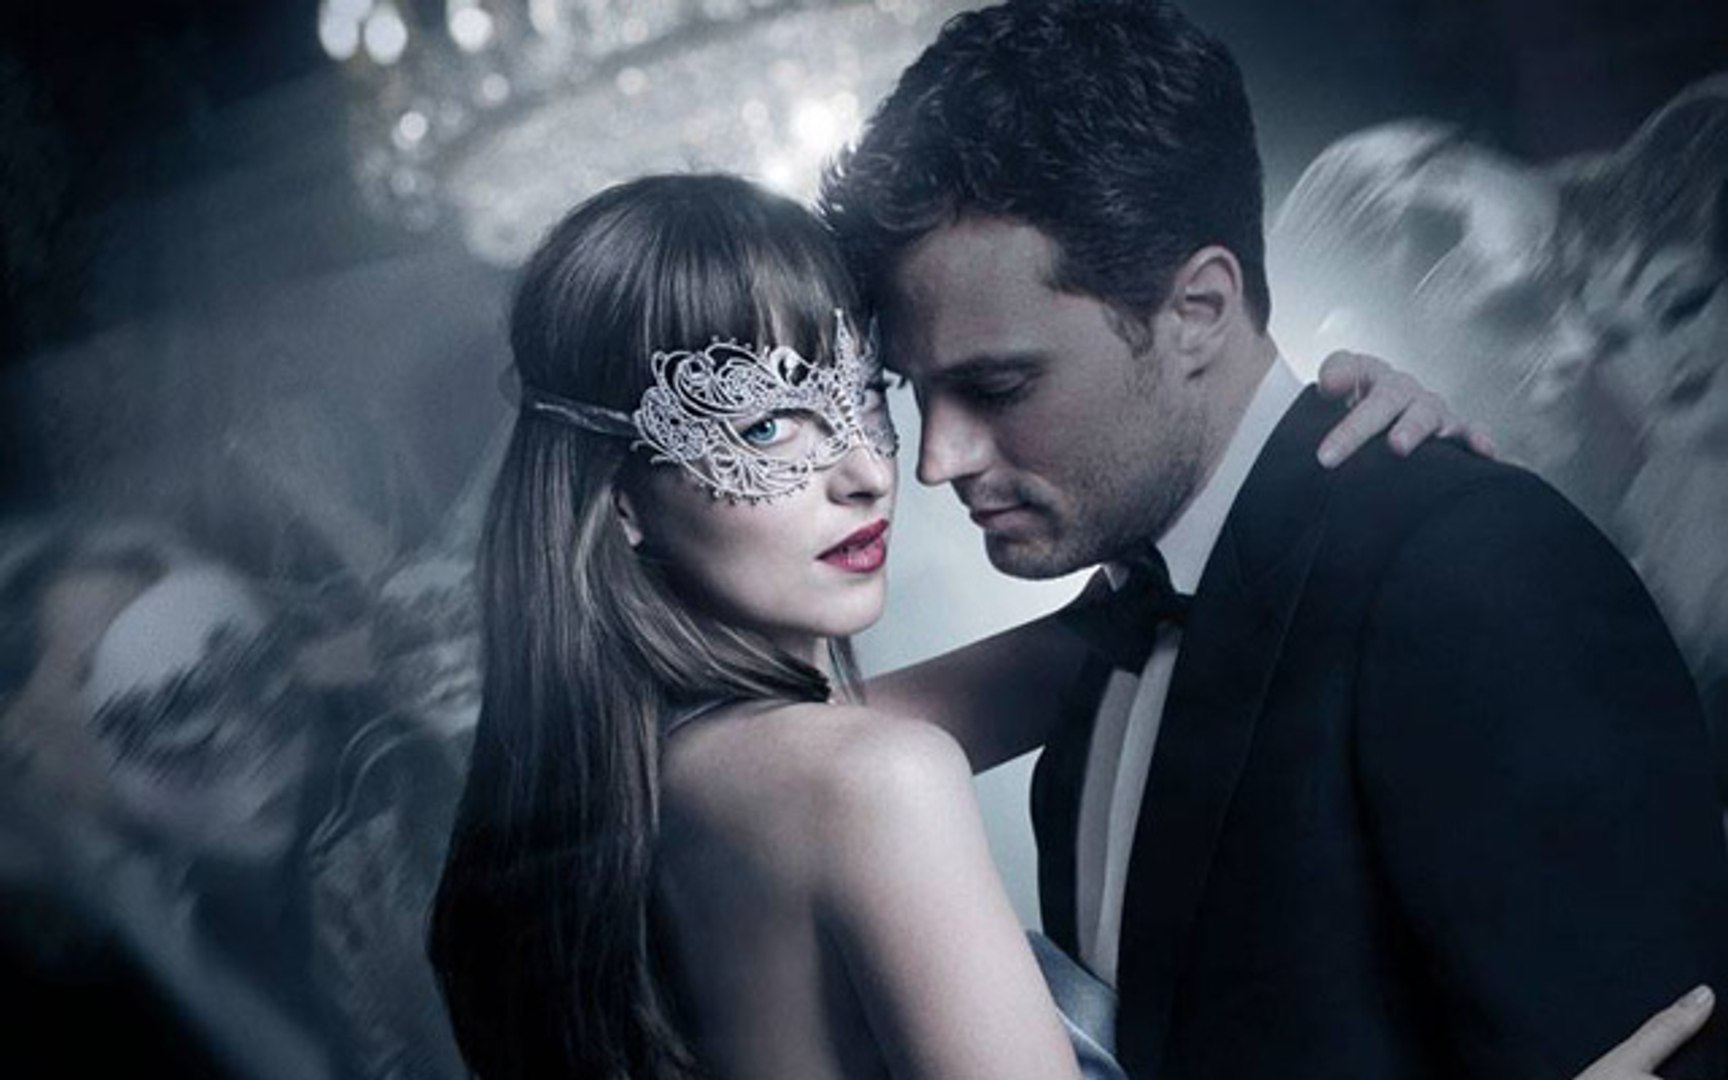 50 shades of darker full movie free online